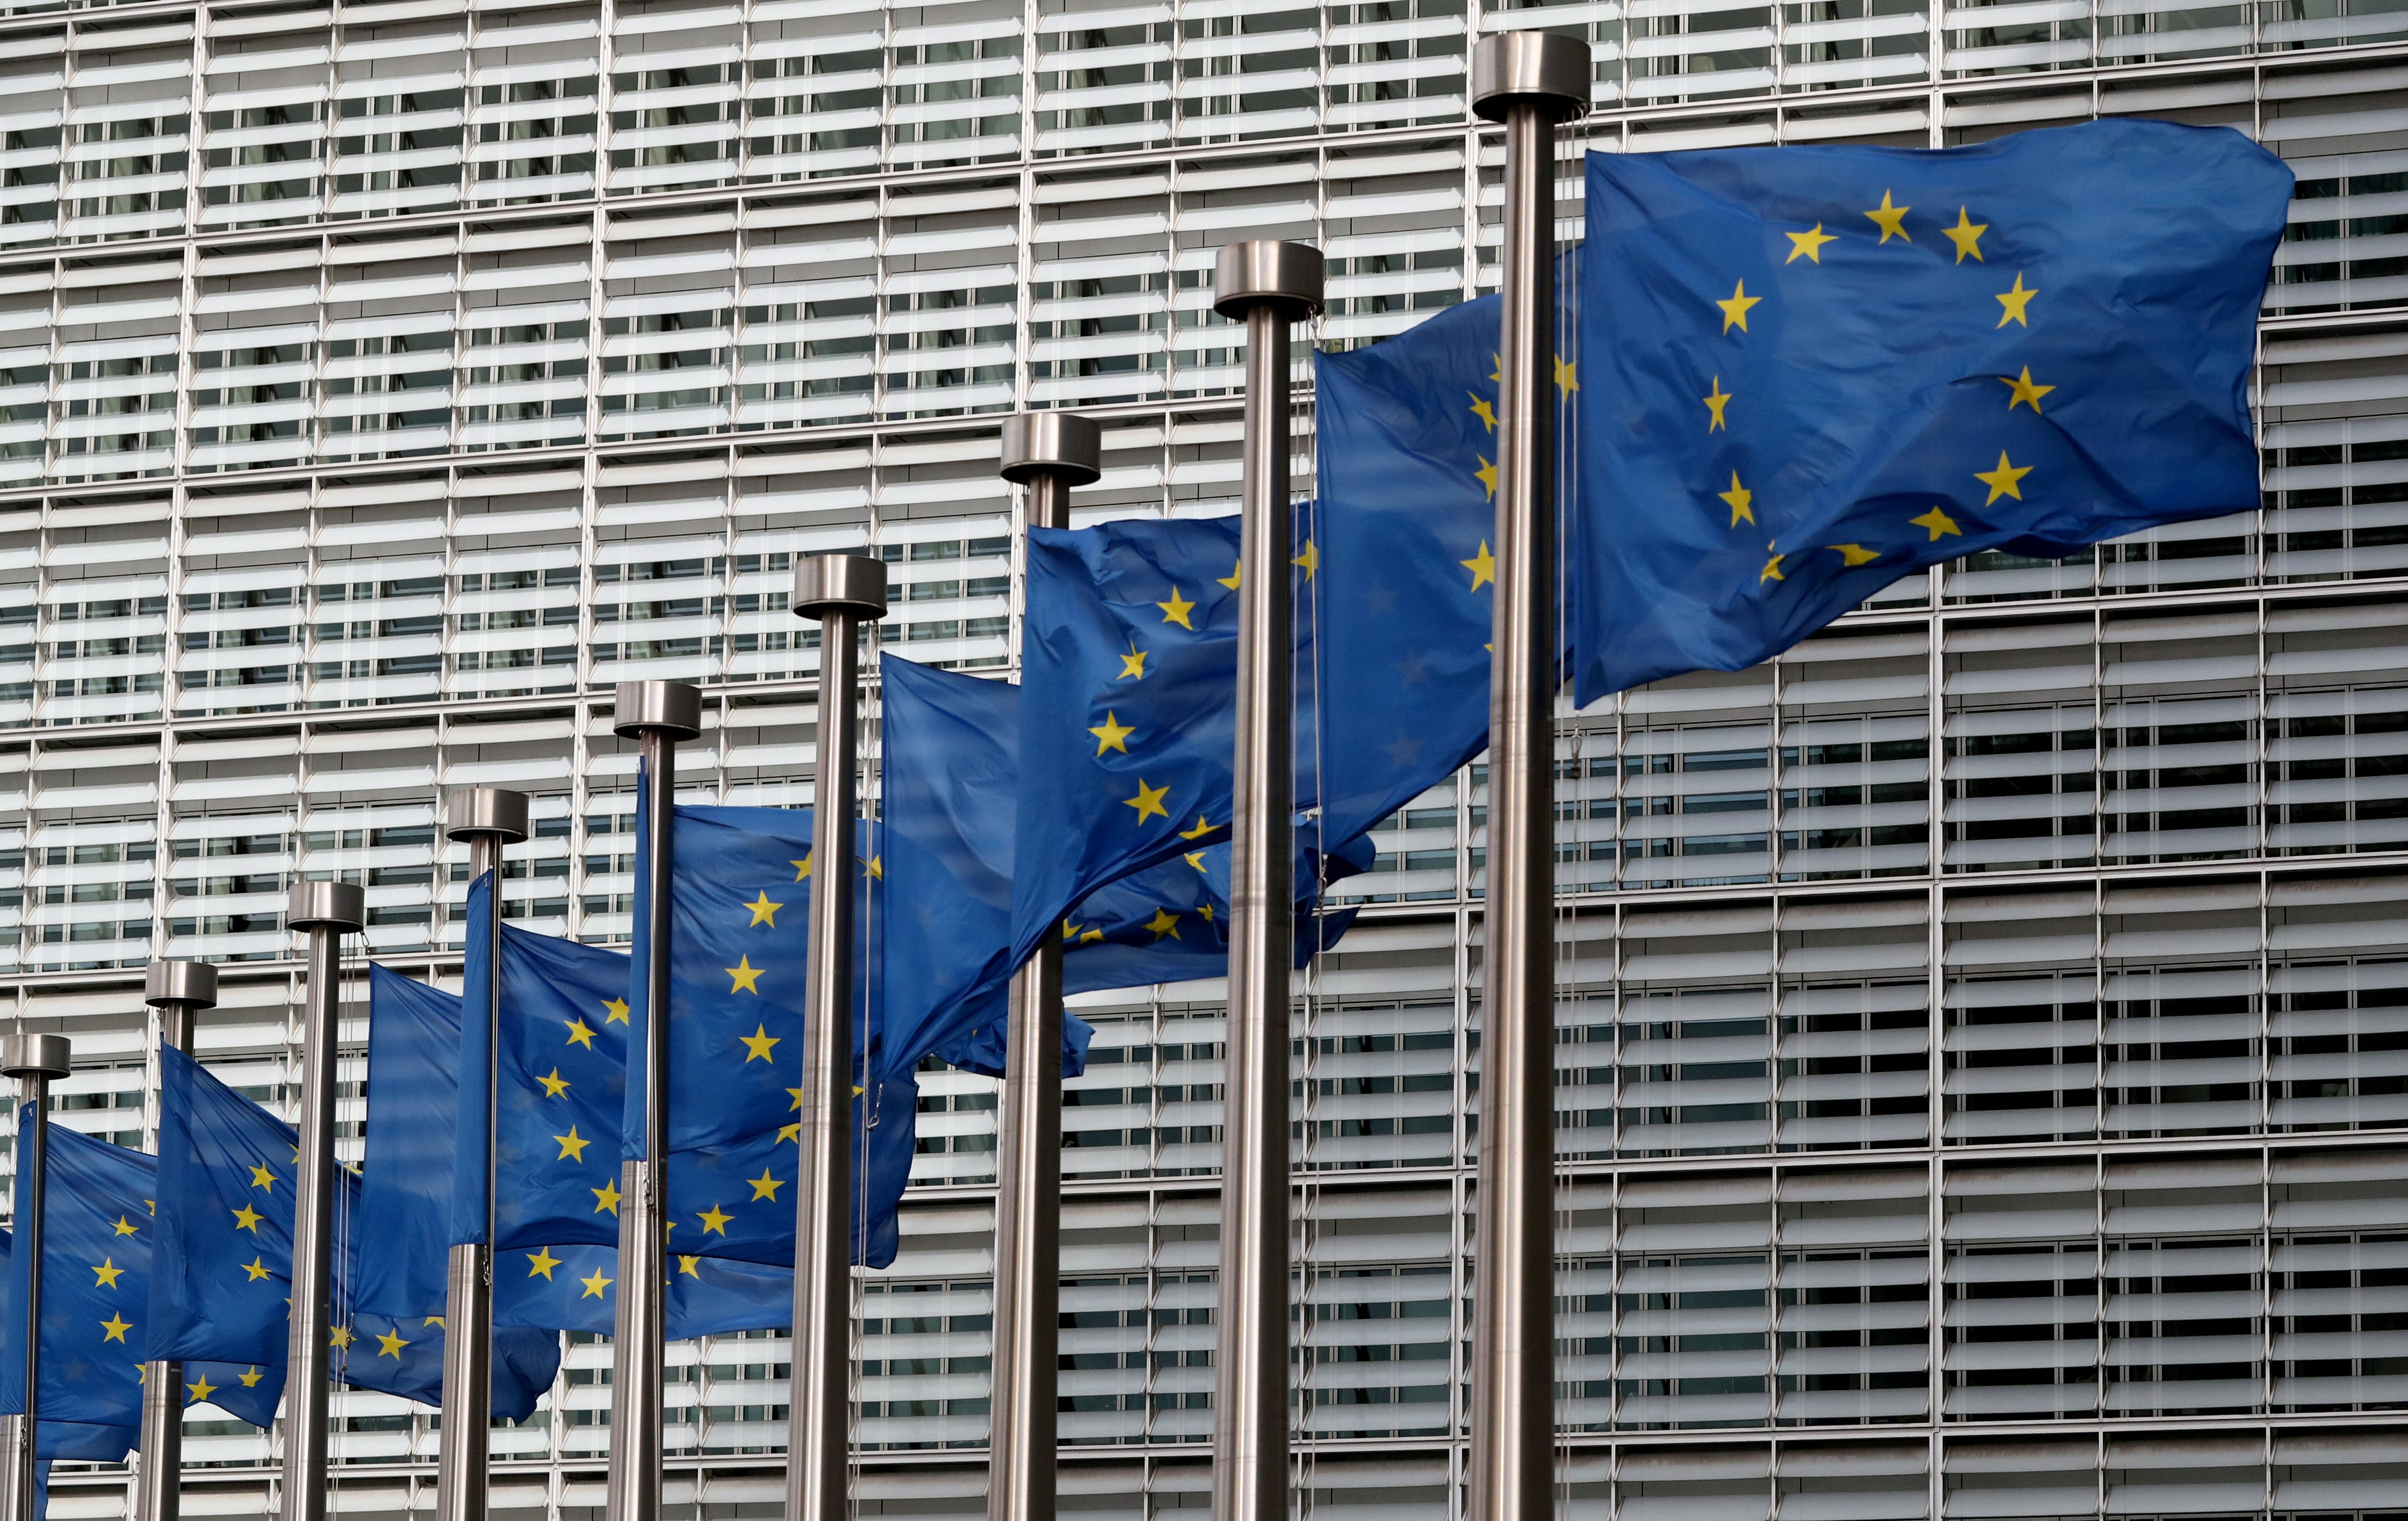 Analyst numbers and company research hit by EU rule change: survey